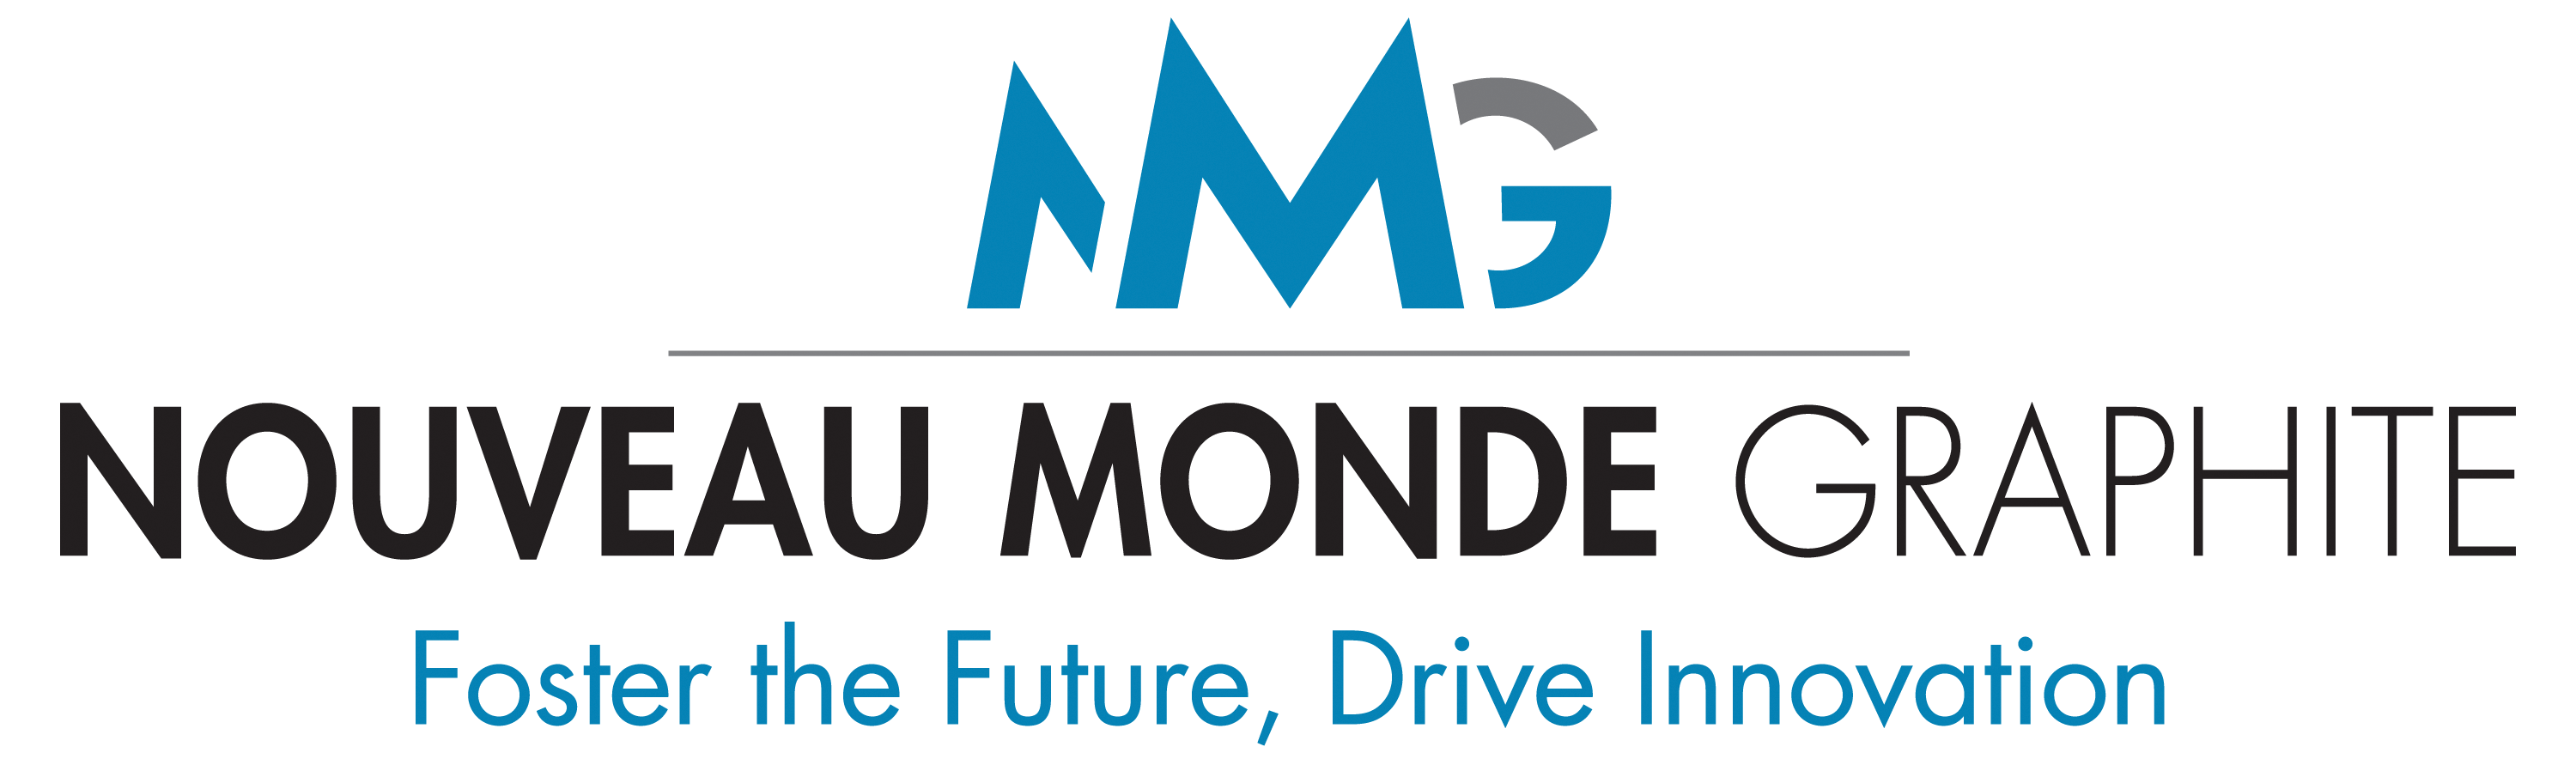 Nouveau Monde Successfully Closes the Financing Transactions with Pallinghurst